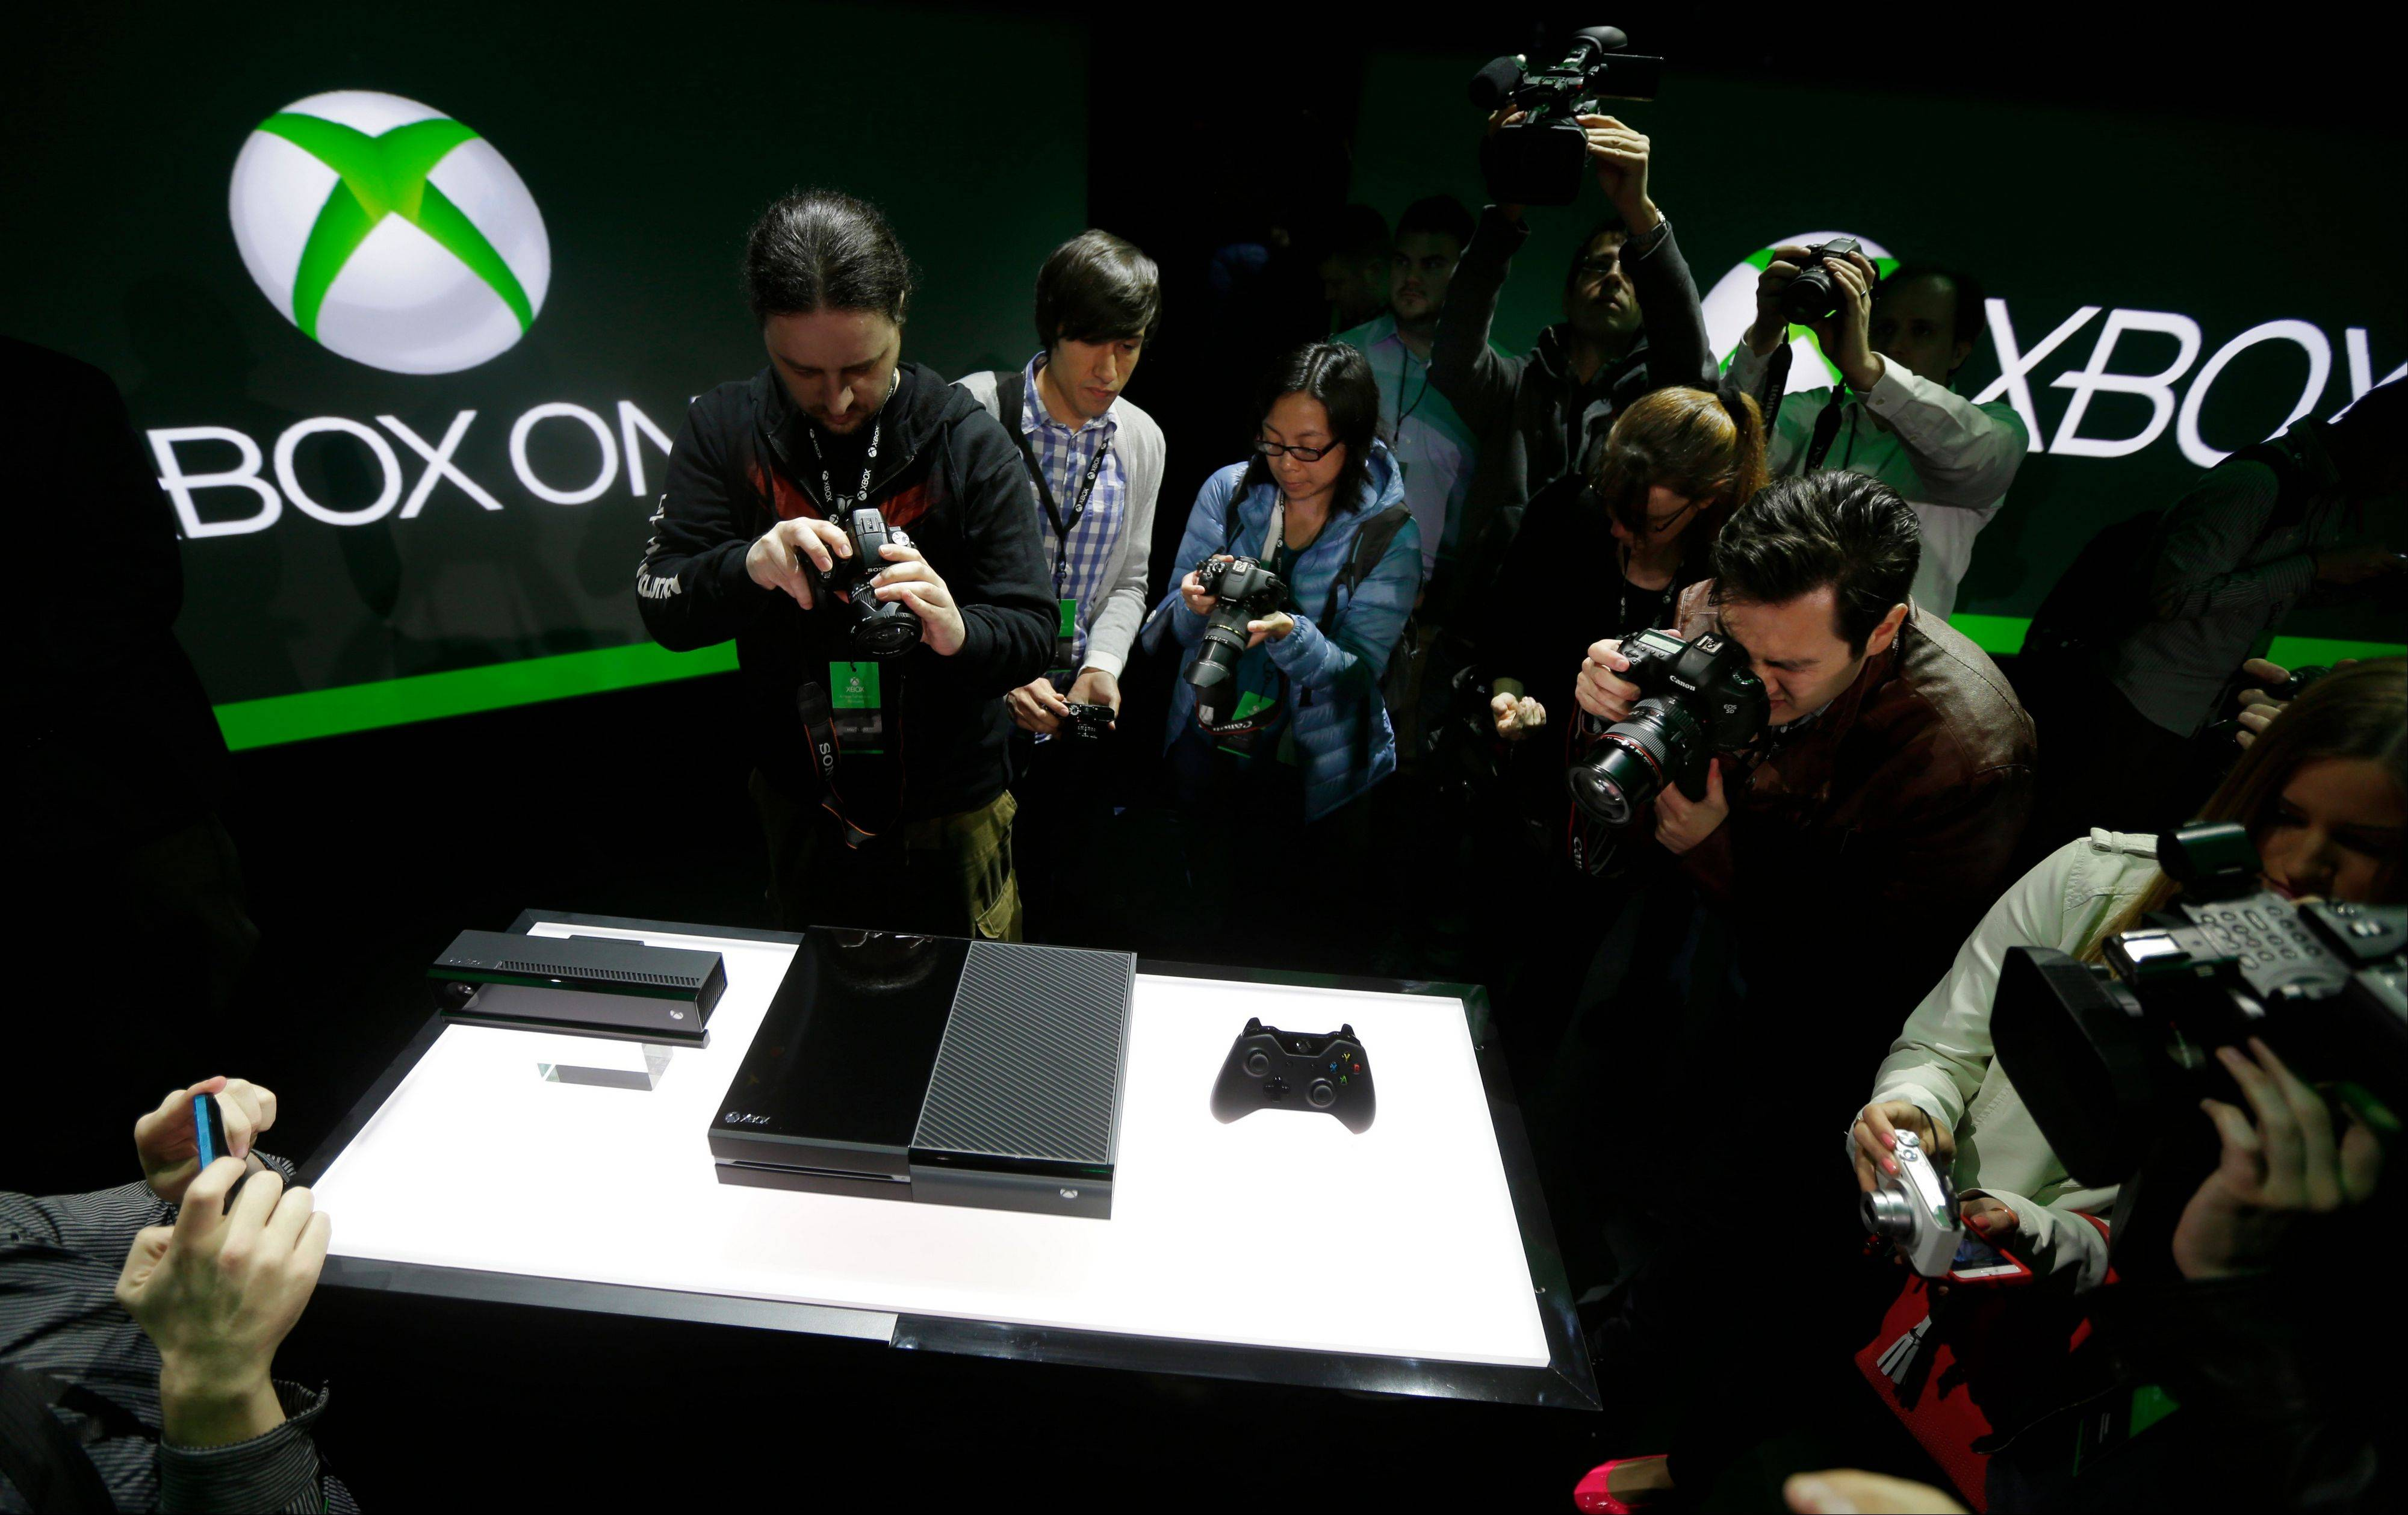 Photographers crowd around Microsoft Corp.'s next-generation Xbox One entertainment and gaming console system after it was officially revealed.